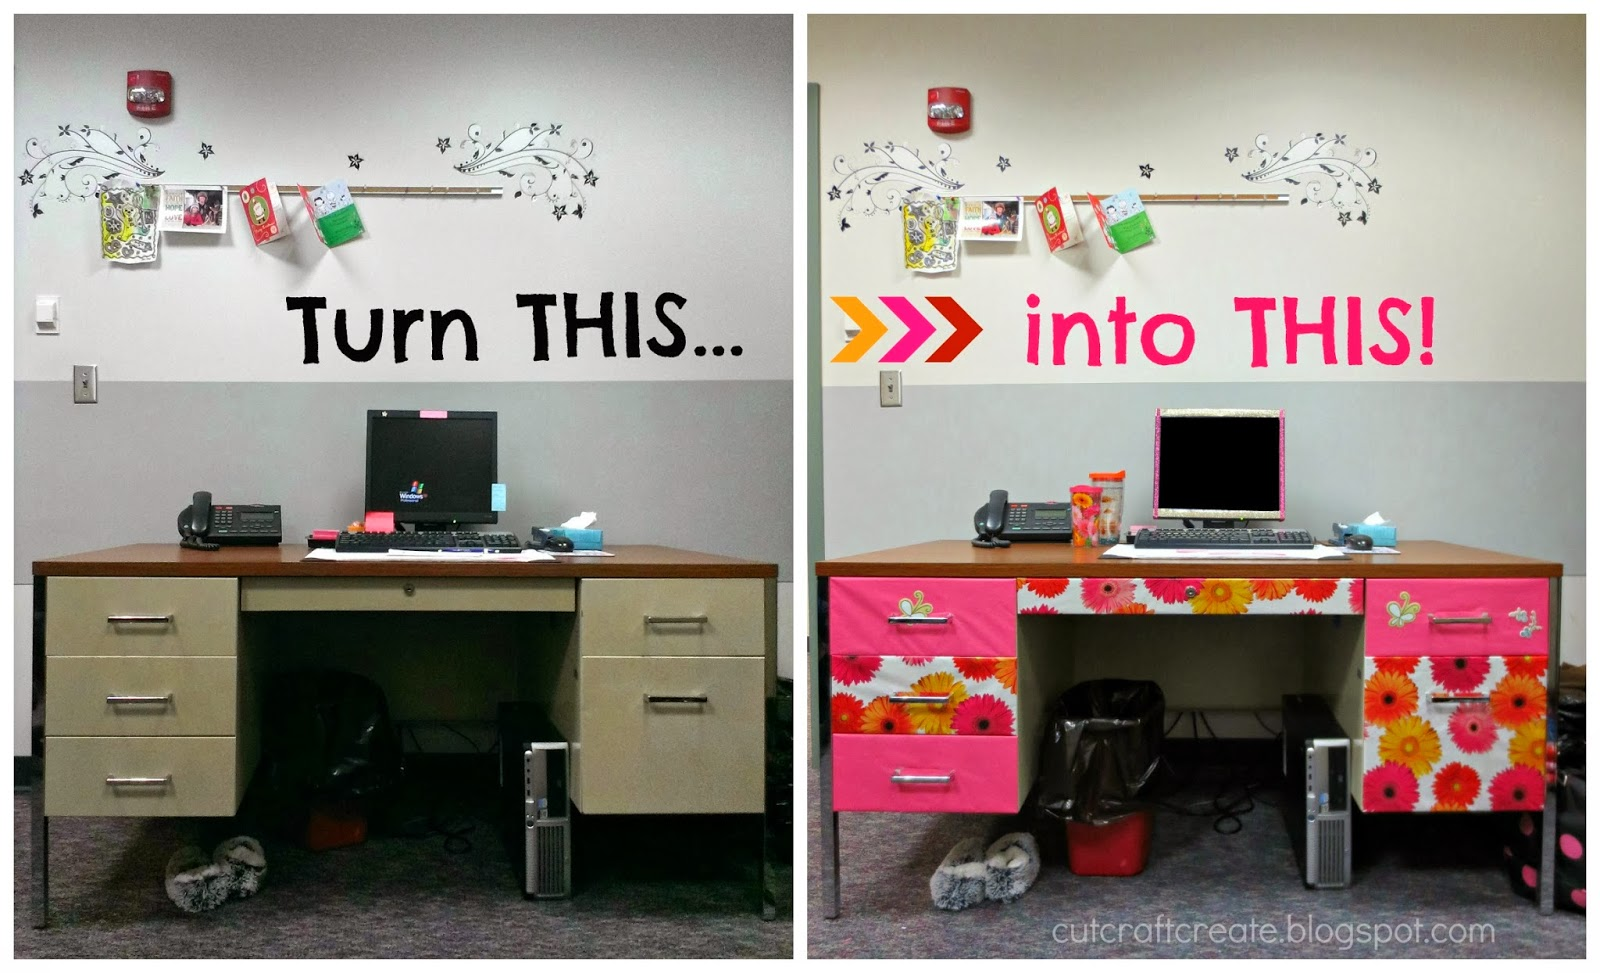 Cut, Craft, Create: Decorate Your Office Space {Part 1}